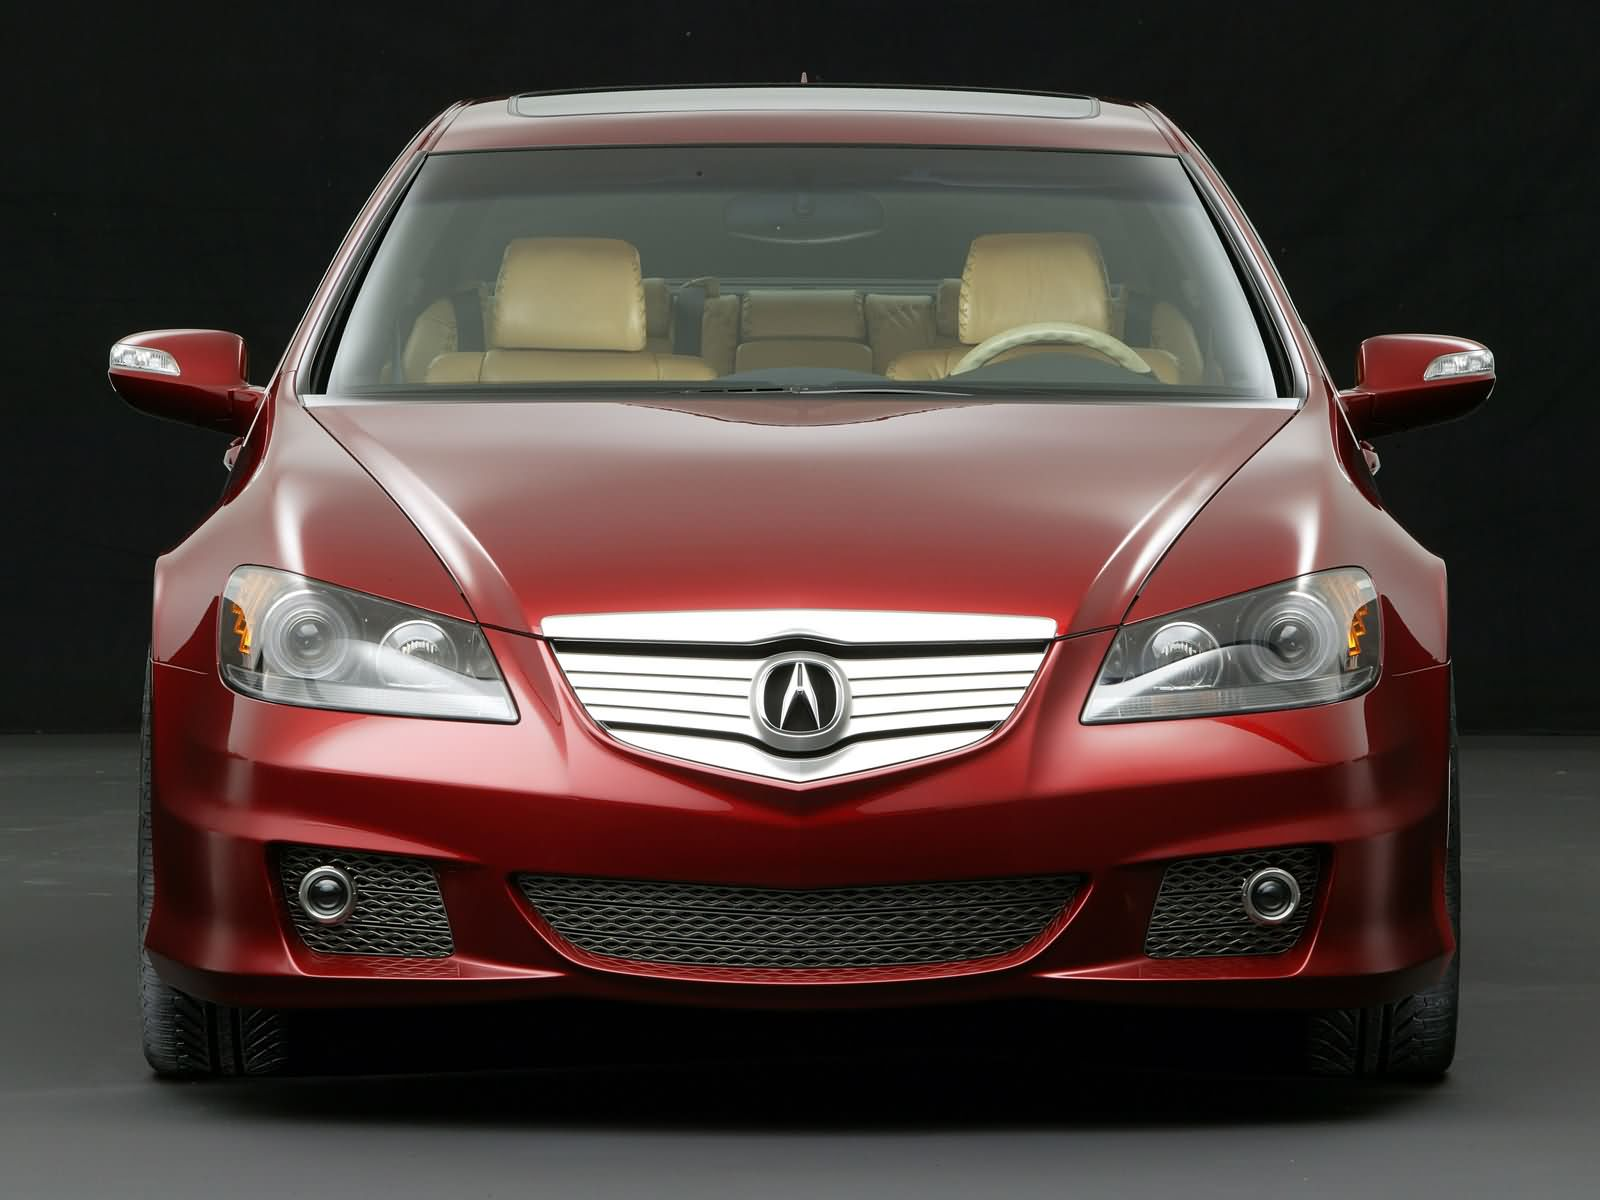 Acura RL A-SPEC photo 18663